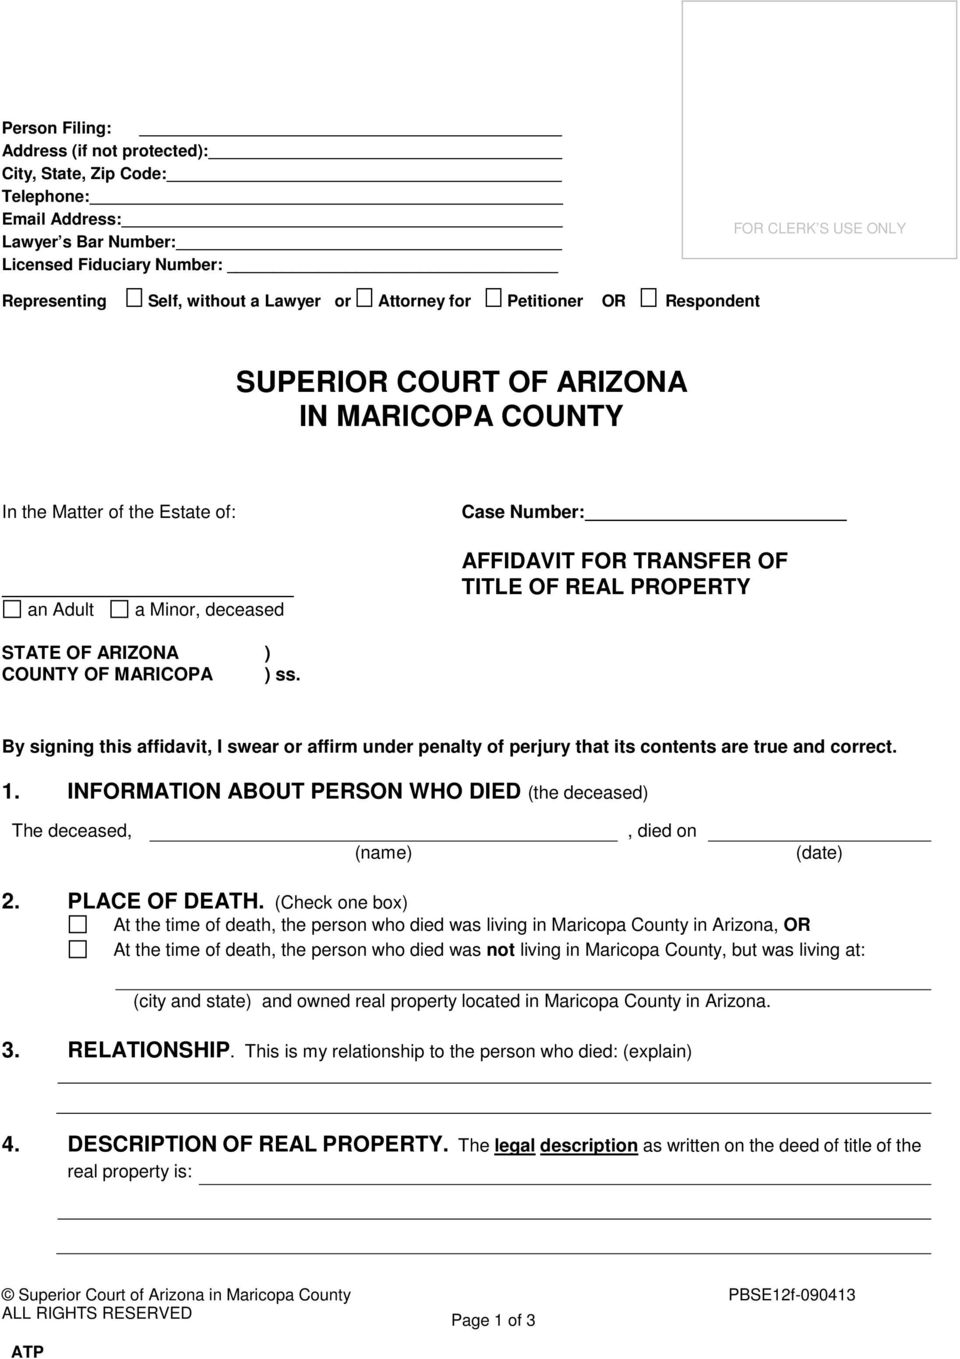 PROPERTY STATE OF ARIZONA ) COUNTY OF MARICOPA ) ss. By signing this affidavit, I swear or affirm under penalty of perjury that its contents are true and correct. 1.